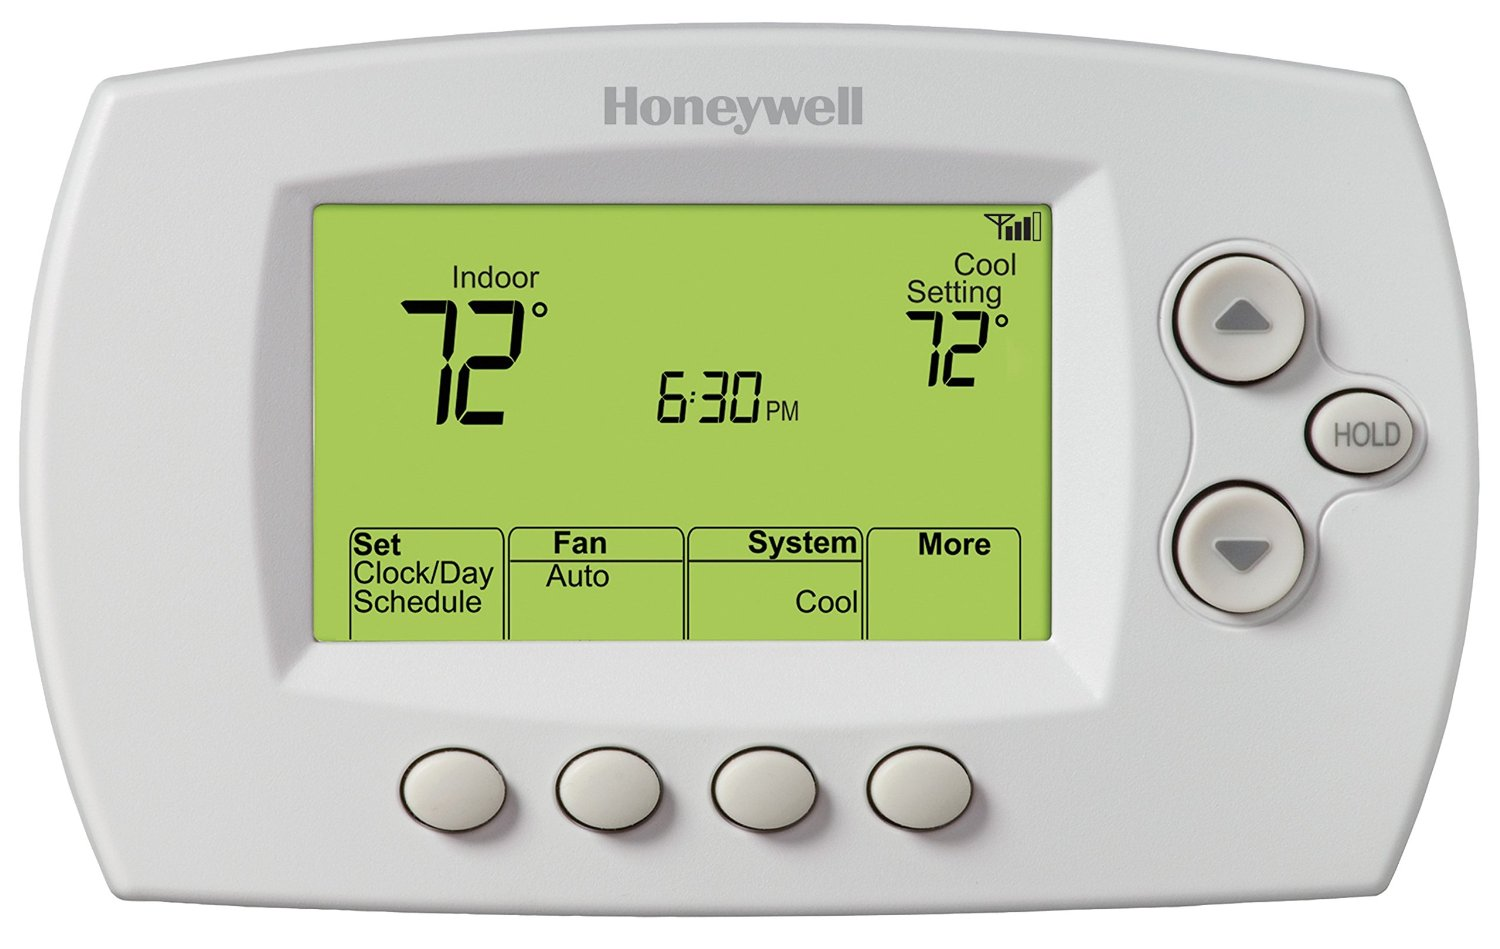 Review Honeywell Rth6580wf Wifi 7 Day Programmable Thermostat Smart Thermostat Guide